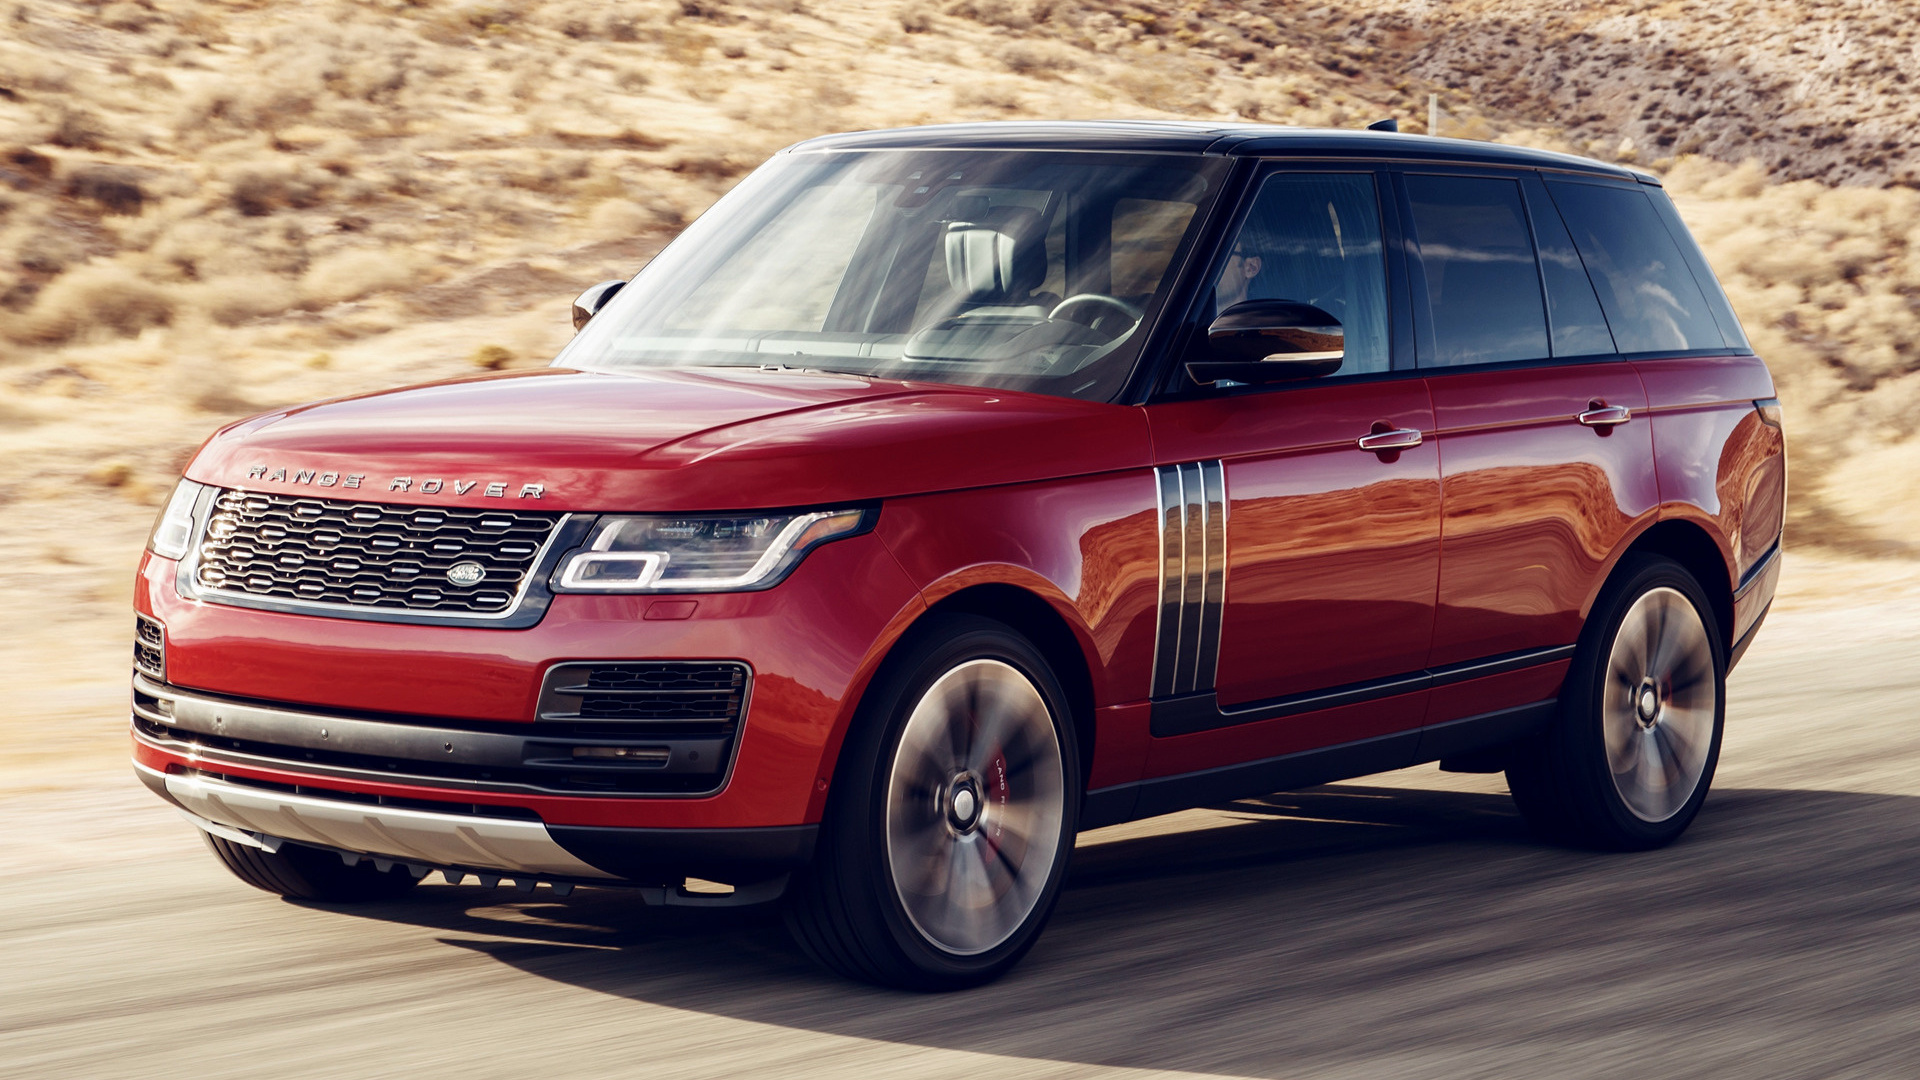 range rover svautobiography dynamic 2018 us wallpapers and hd images car pixel. Black Bedroom Furniture Sets. Home Design Ideas